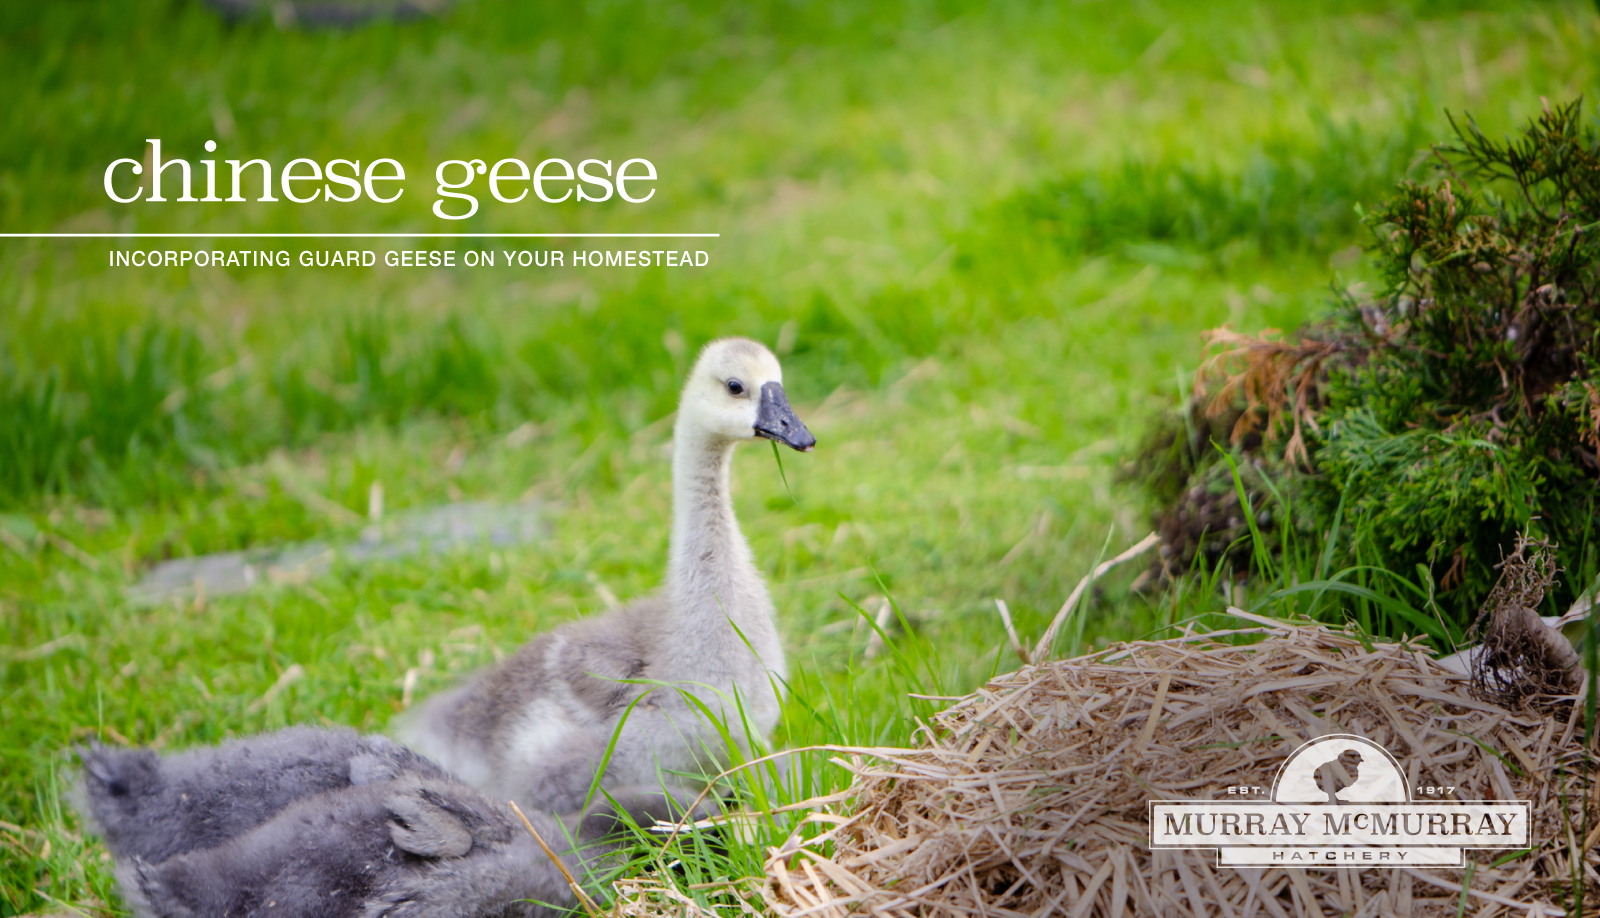 McMurray Hatchery Homesteading Blog | The History of Chinese Geese